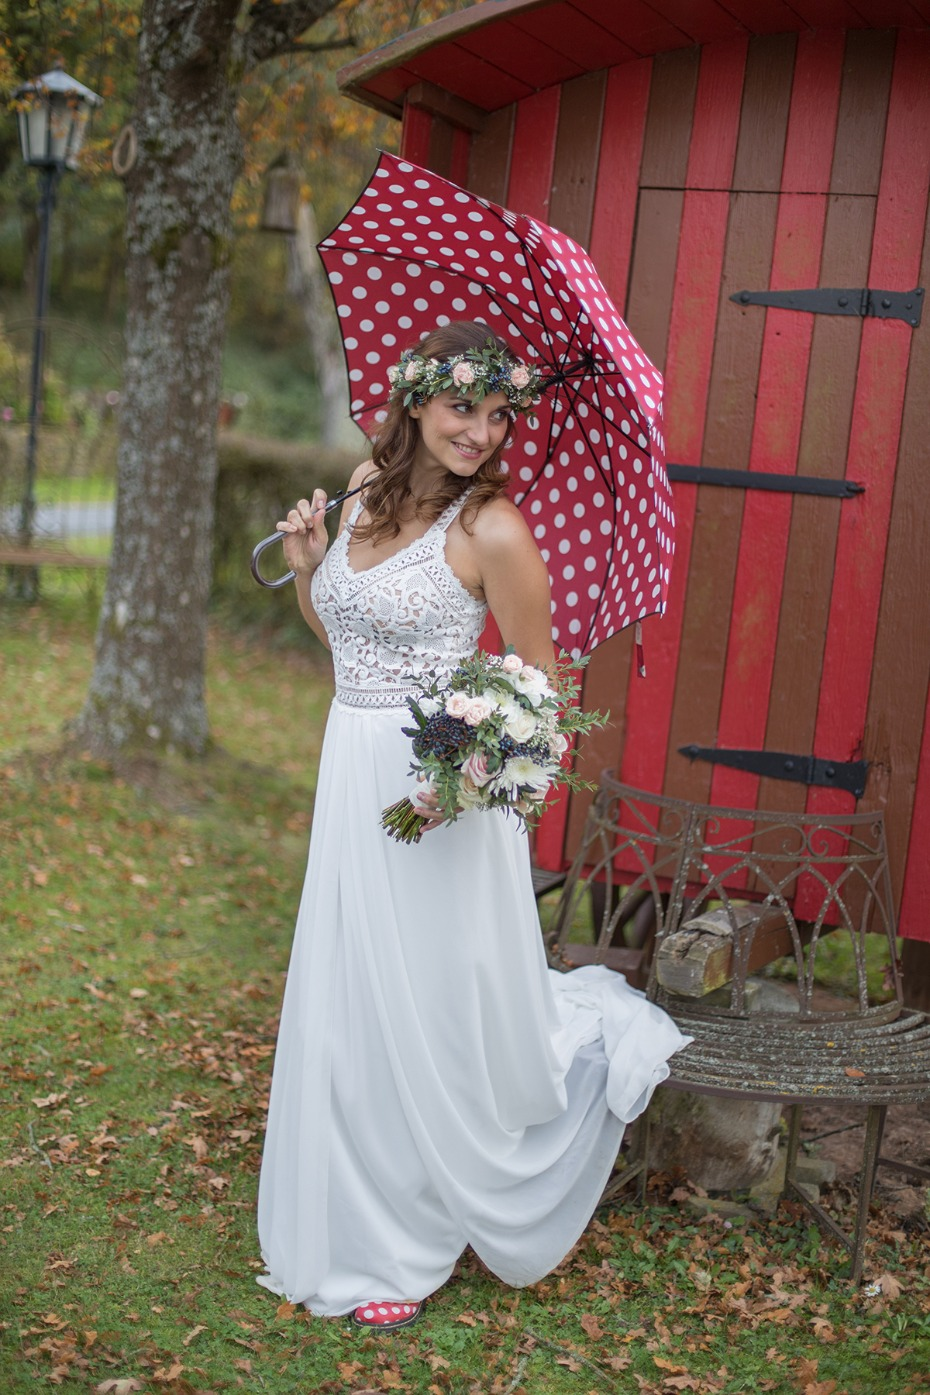 sweet bridal photo op with polka dot umbrella